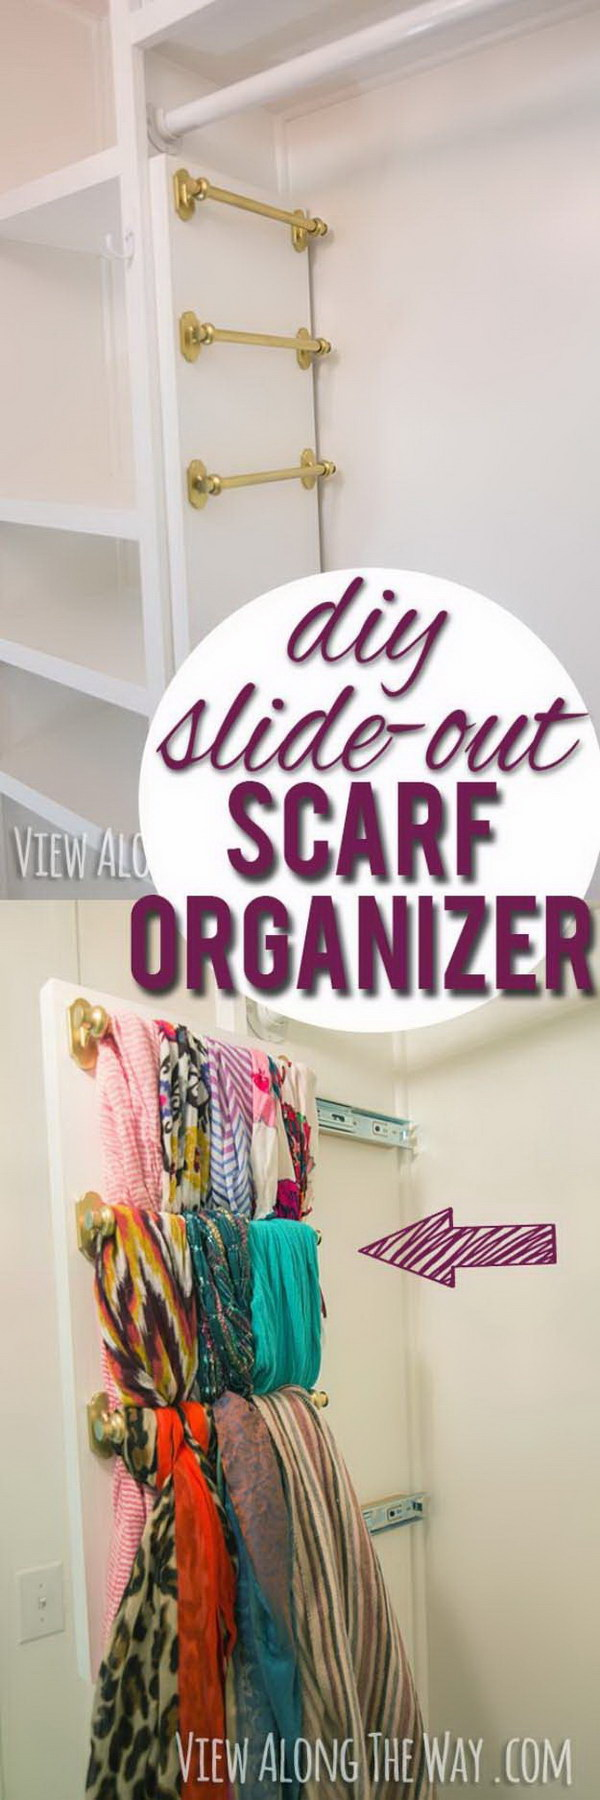 DIY Slide-Out Scarf And Belt Organizers.